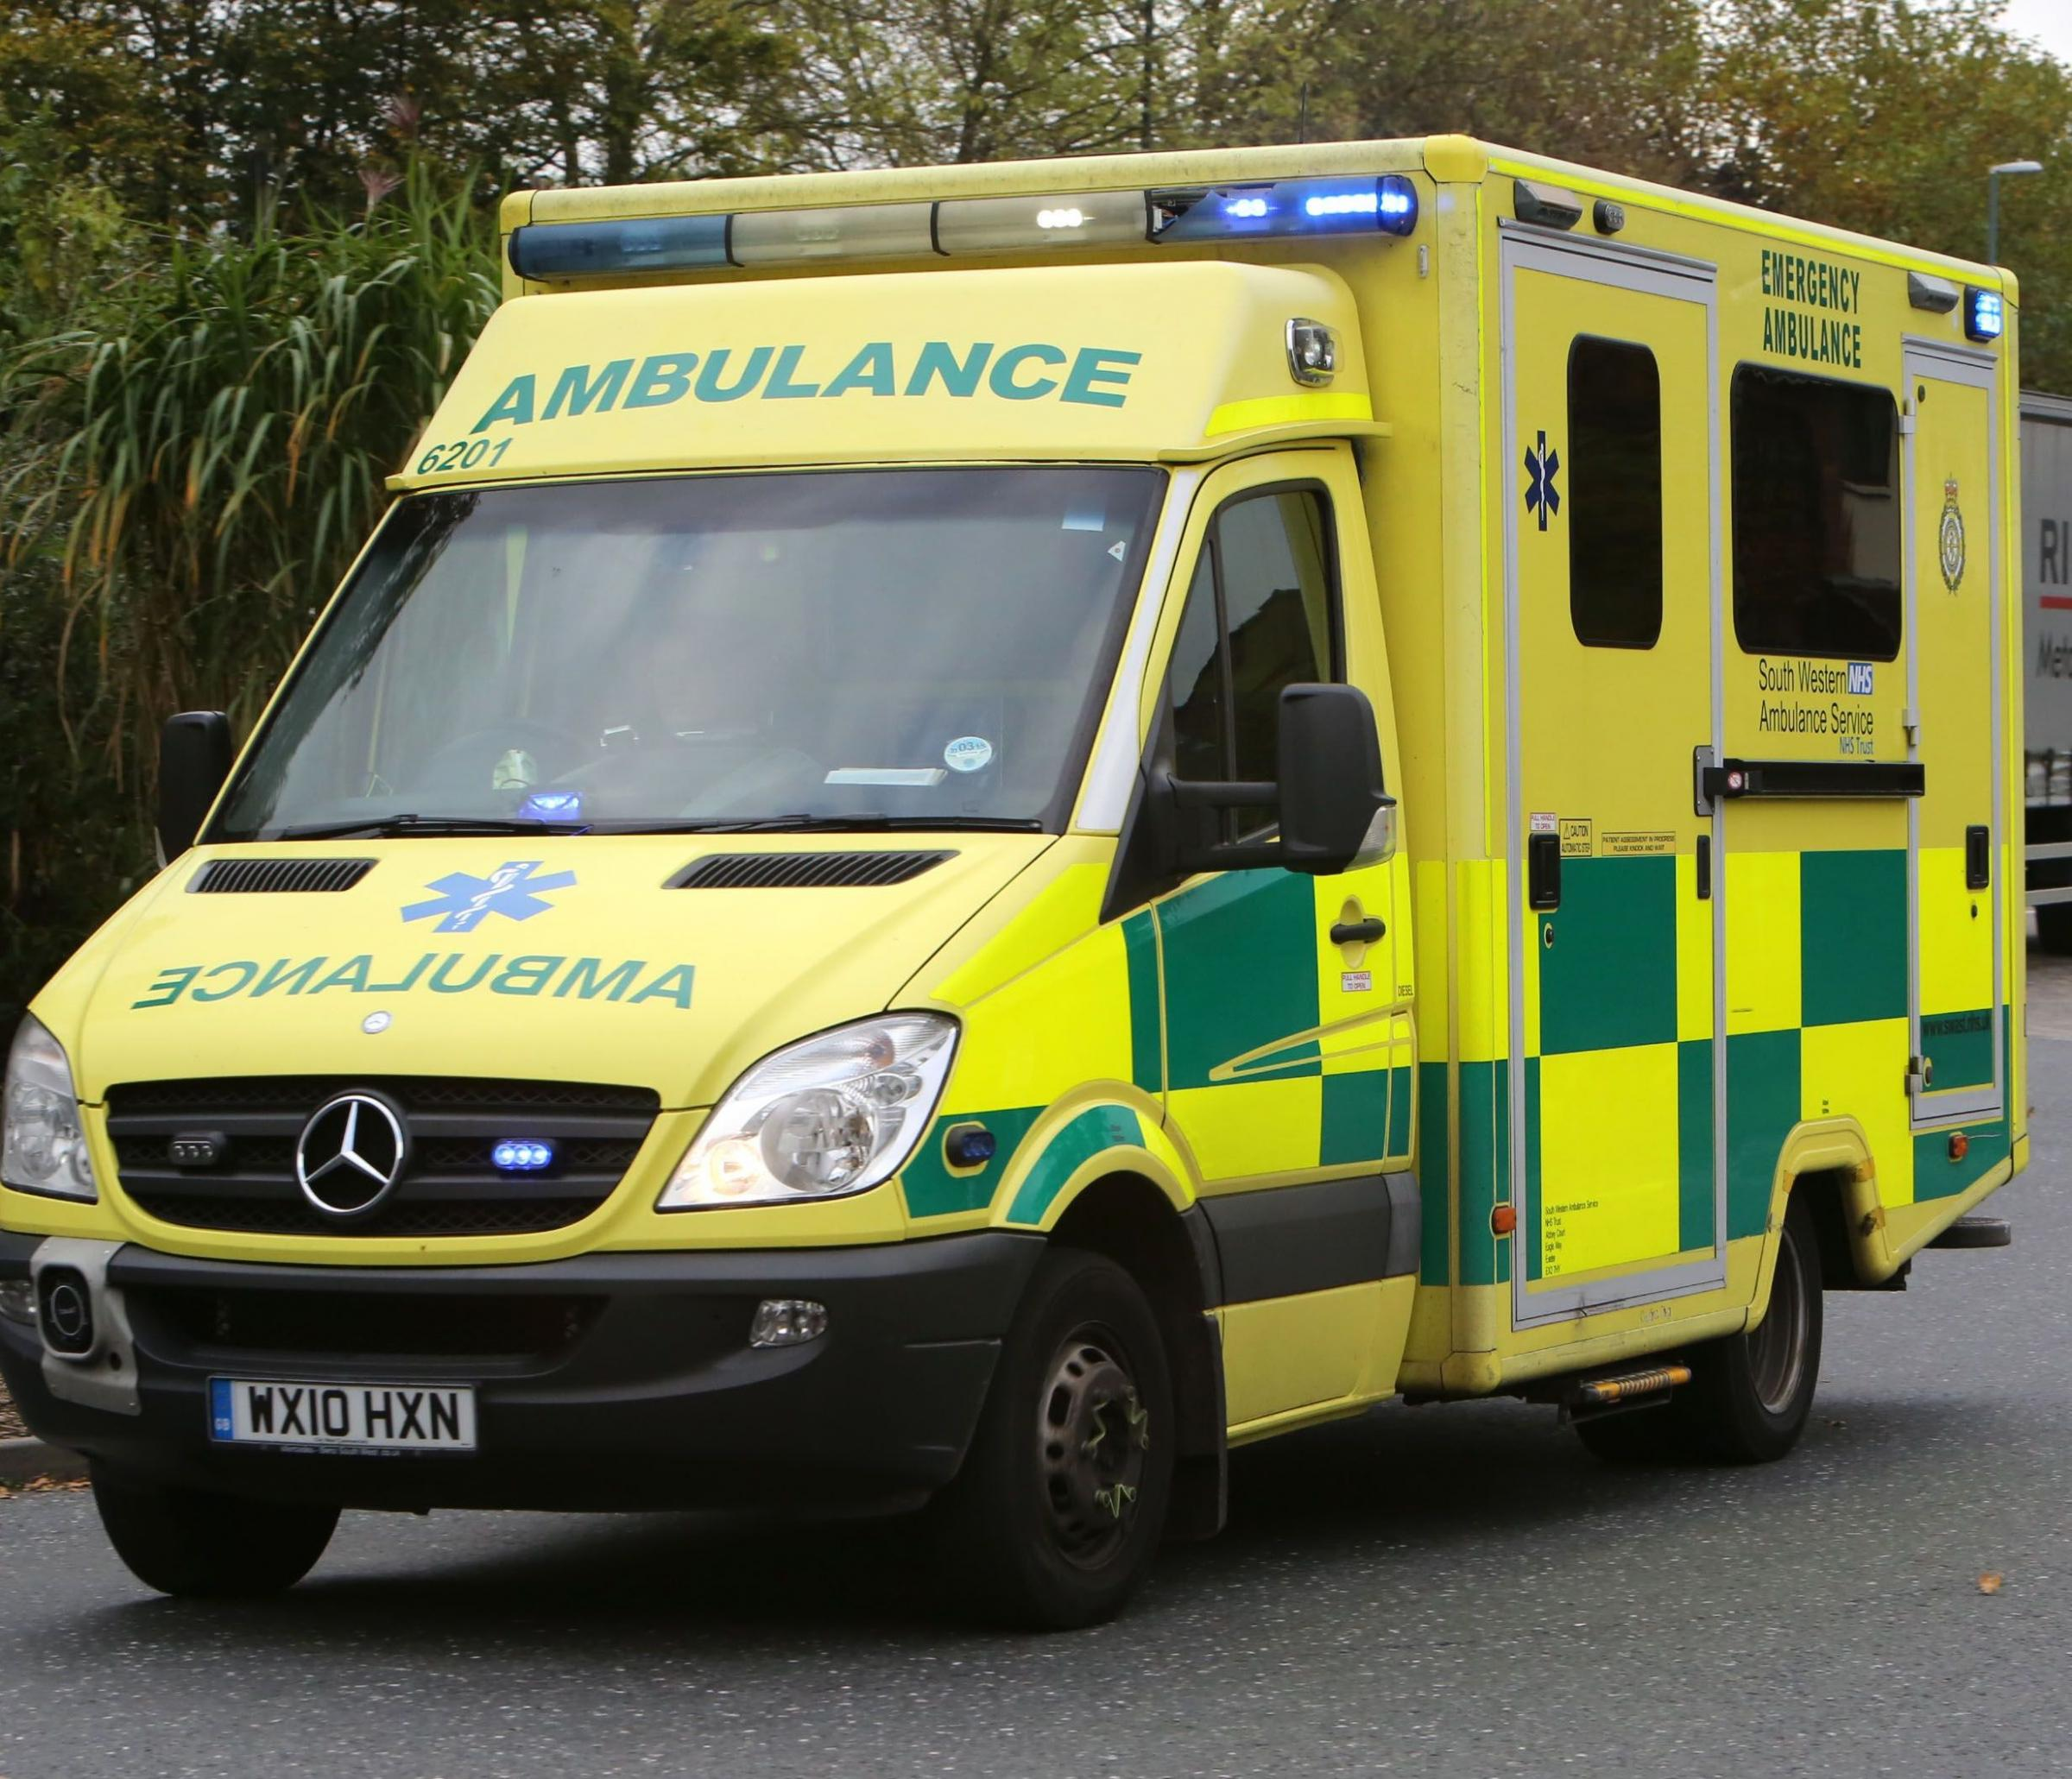 Record emergency and ambulance admissions at Musgrove Park Hospital